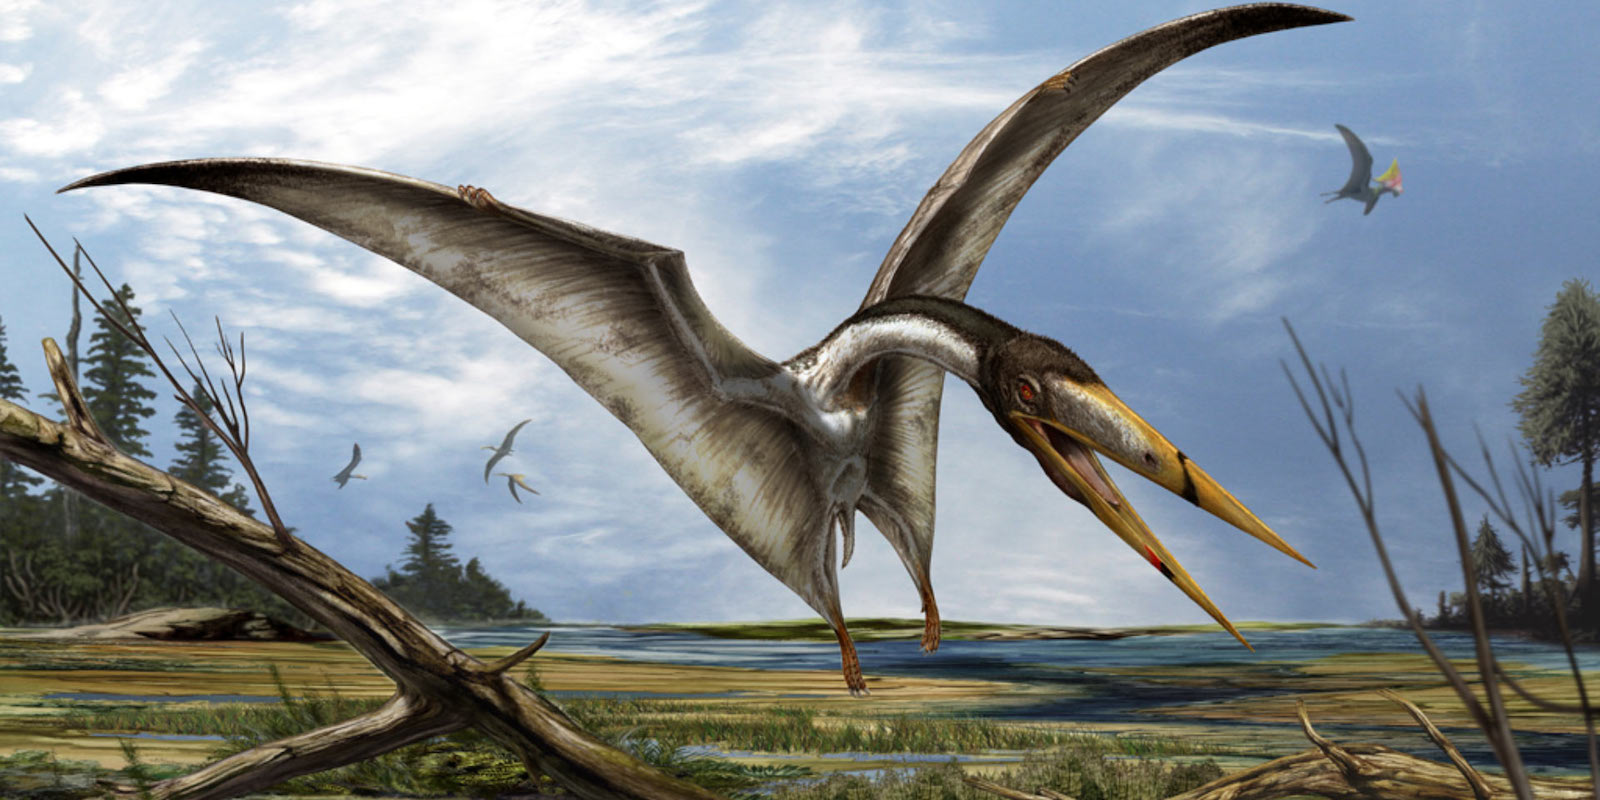 Pterosaur artist impression by David Bonnadona